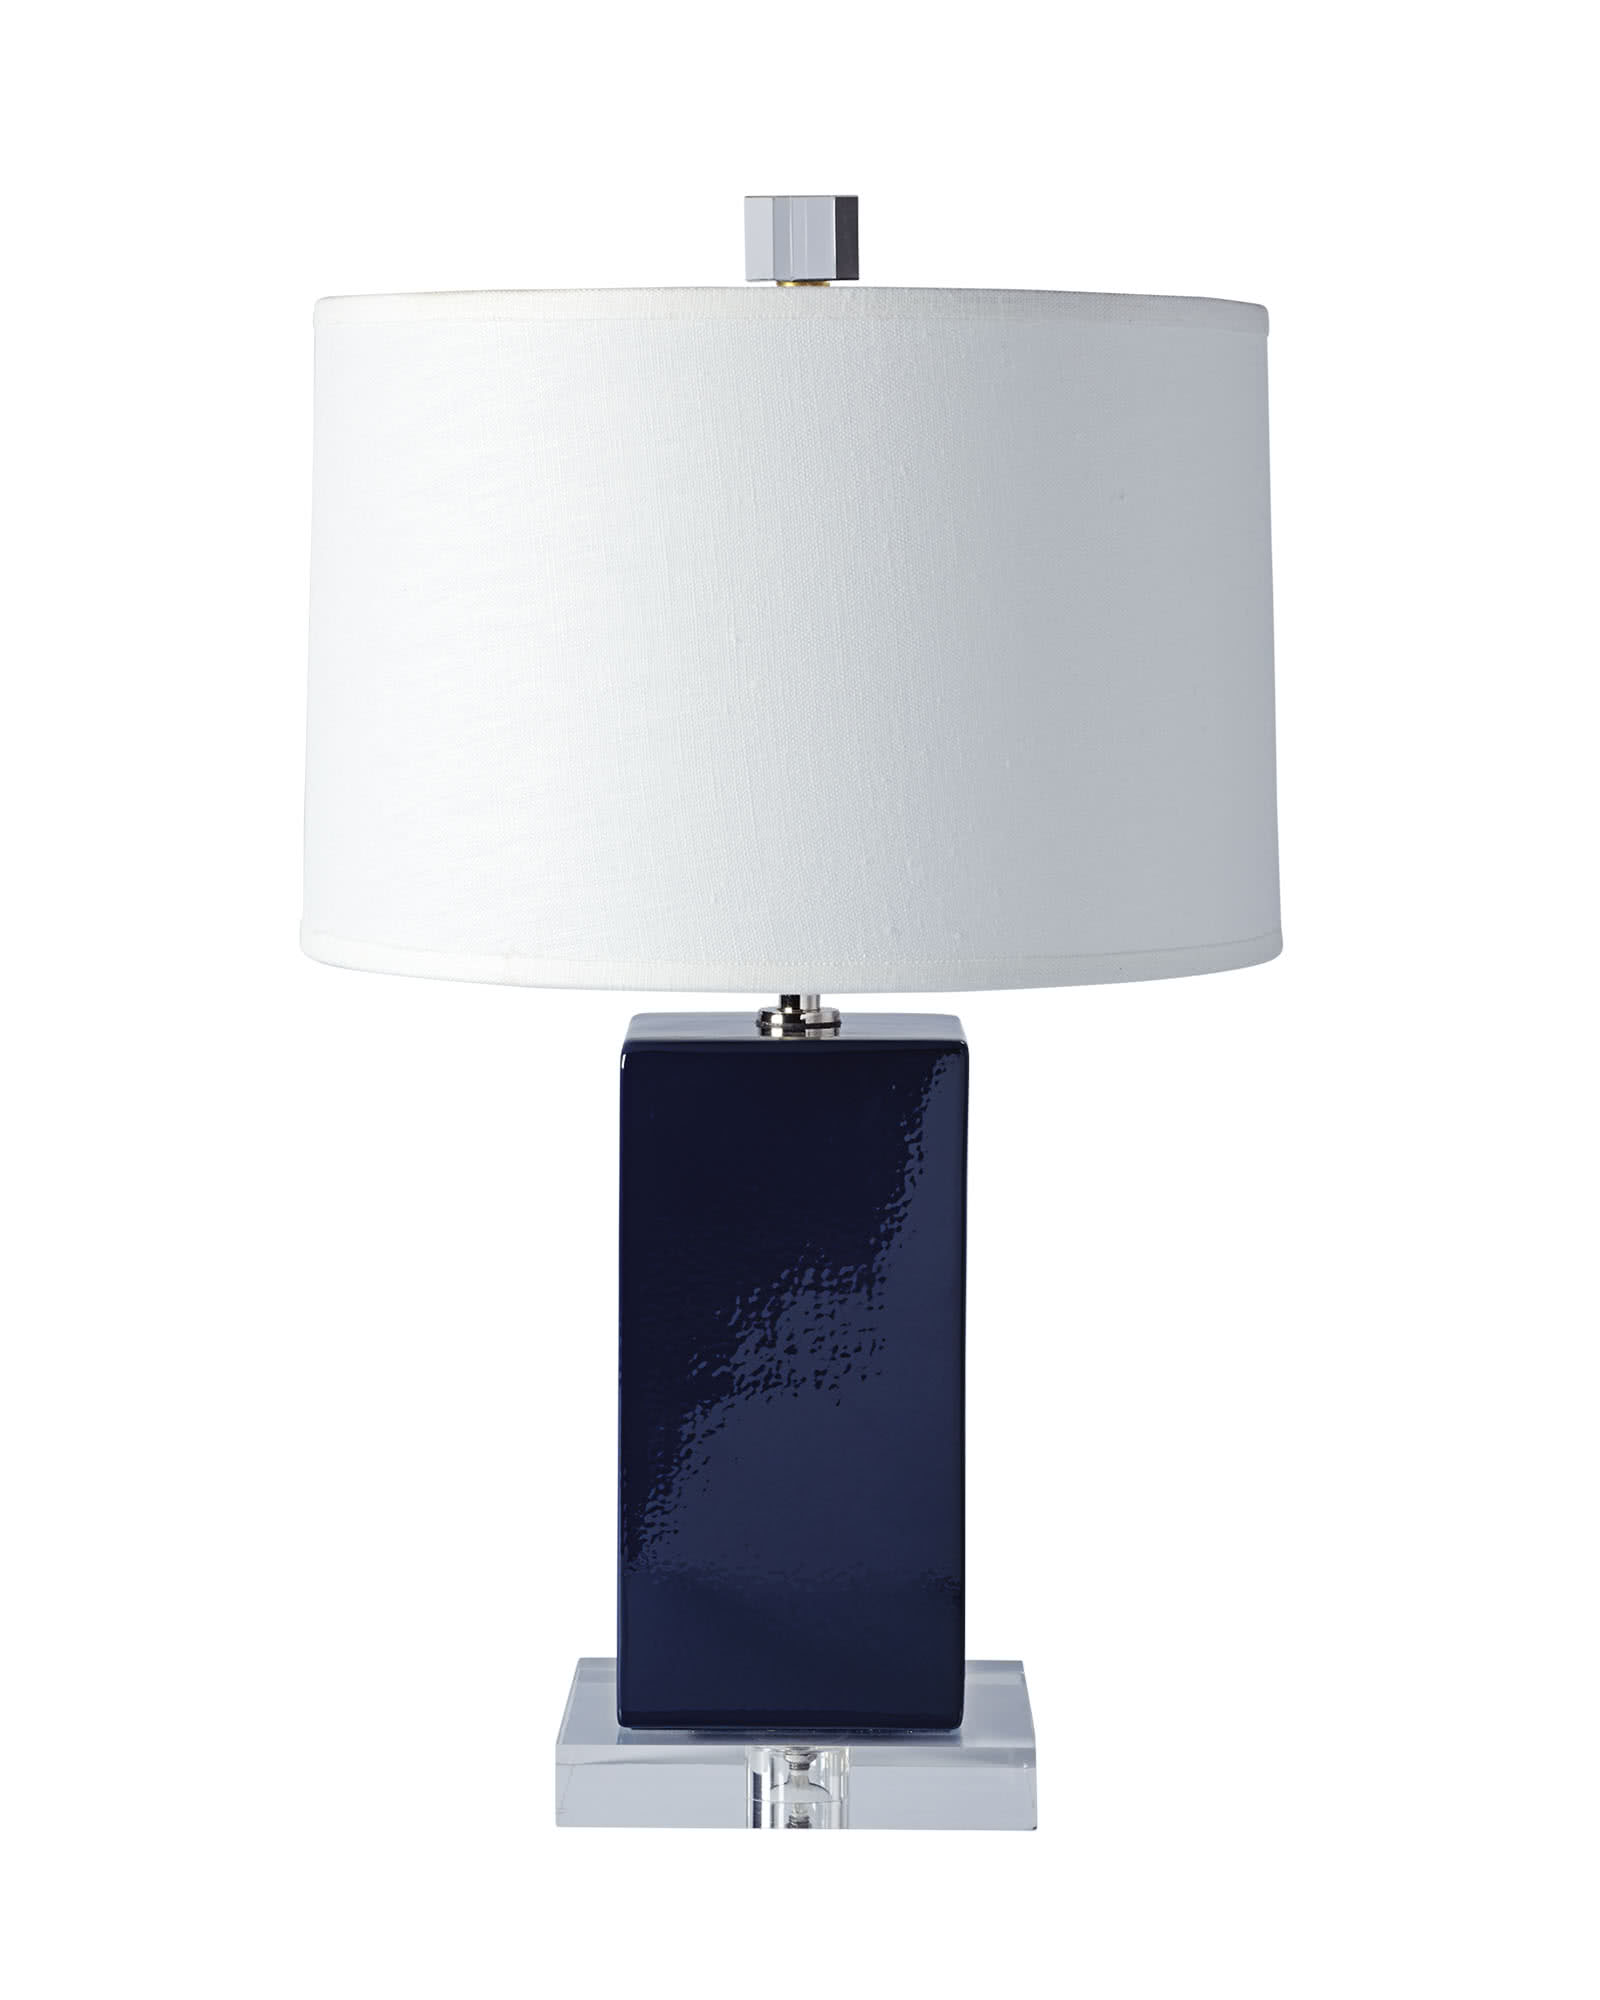 Darby Table Lamp,